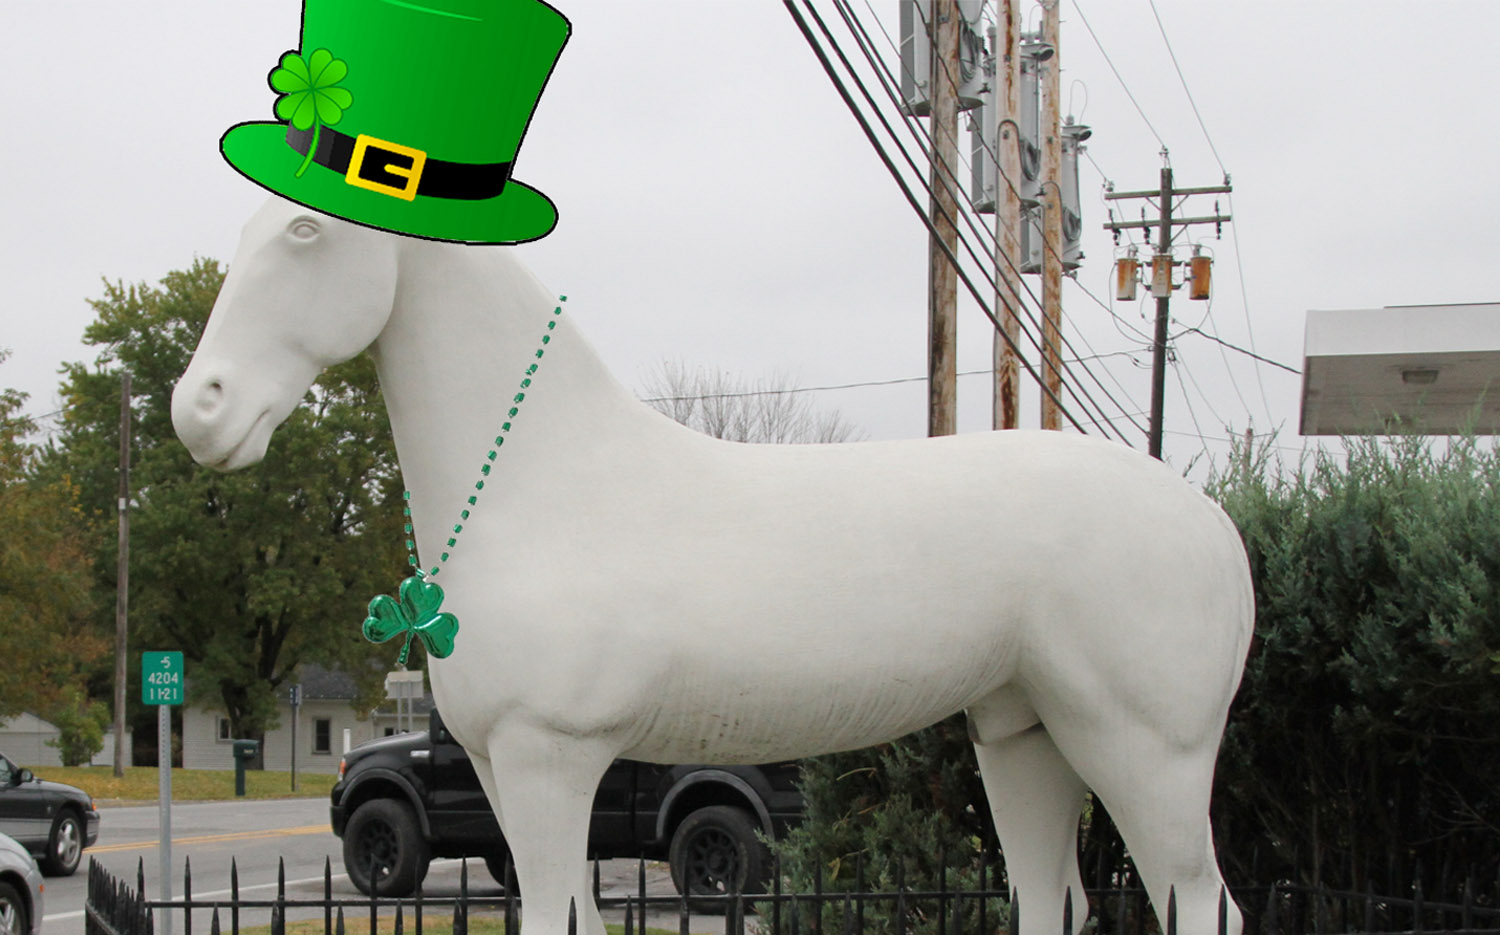 St. Patty's Day Parade Poised to Unite Community